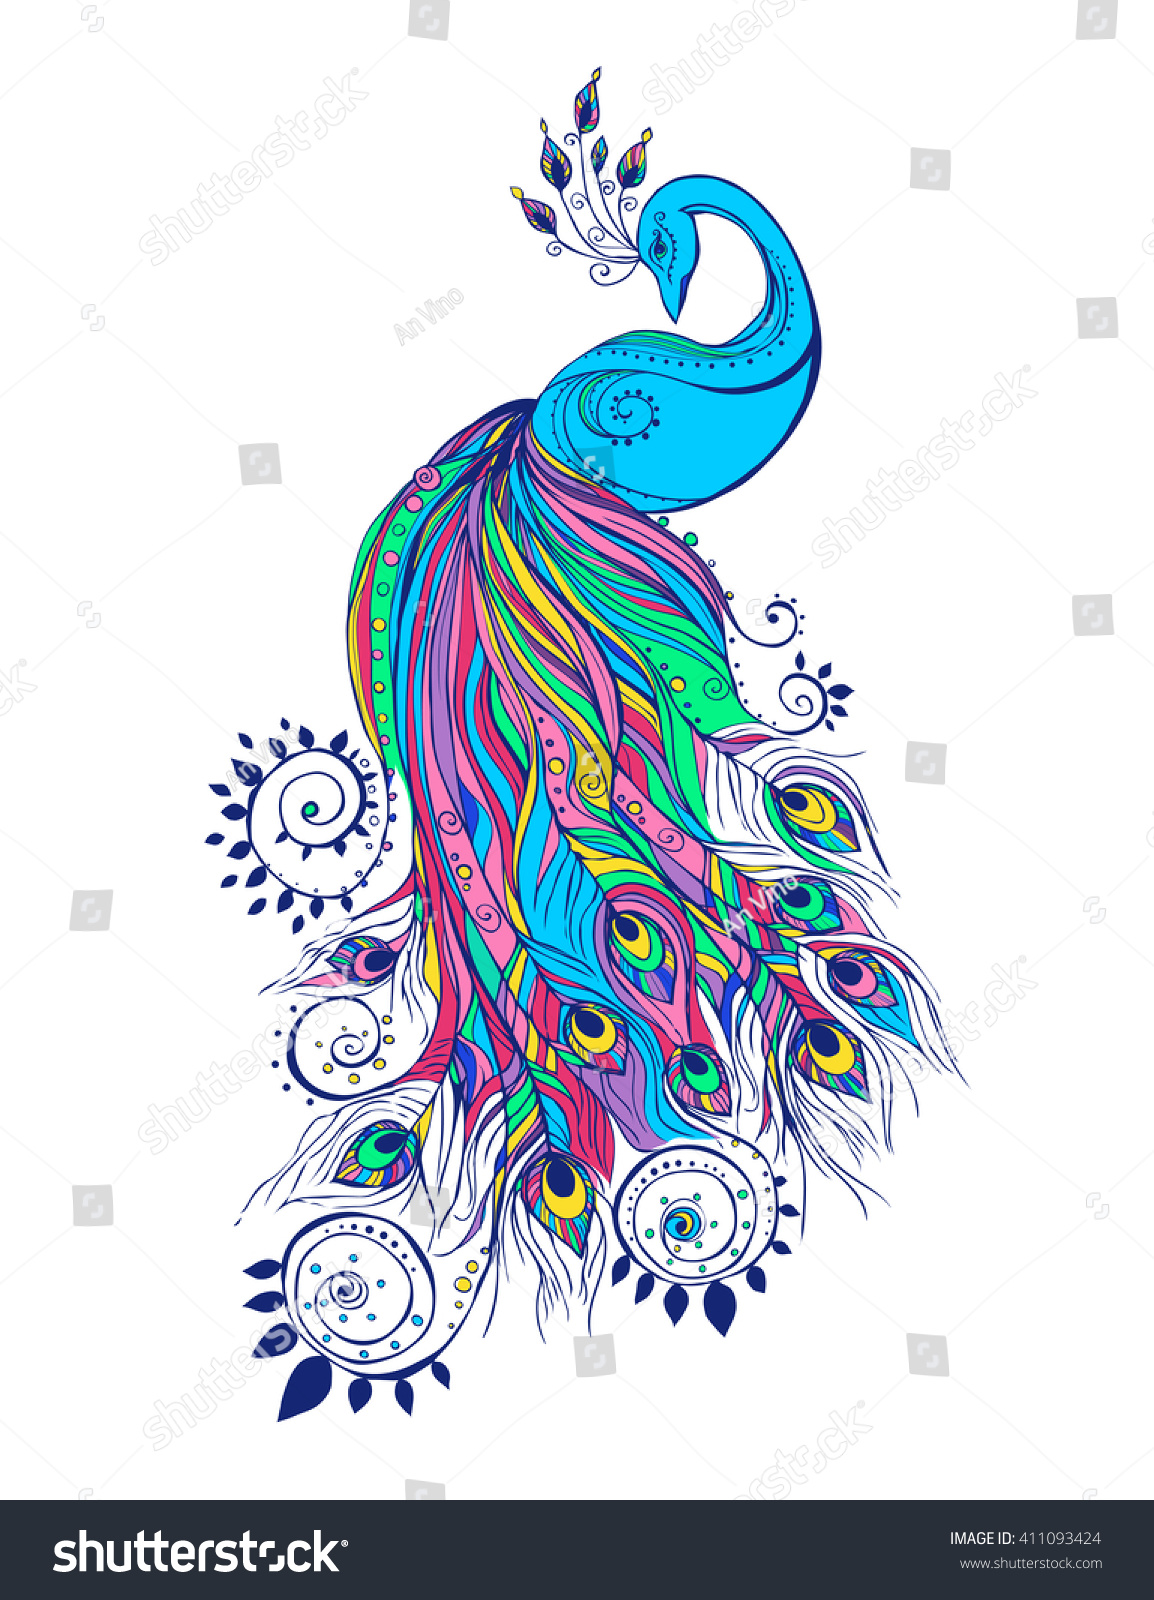 colorful fashion card peacock color bird stock vector 411093424 colorful fashion card with peacock color bird for the design of textiles clothing t